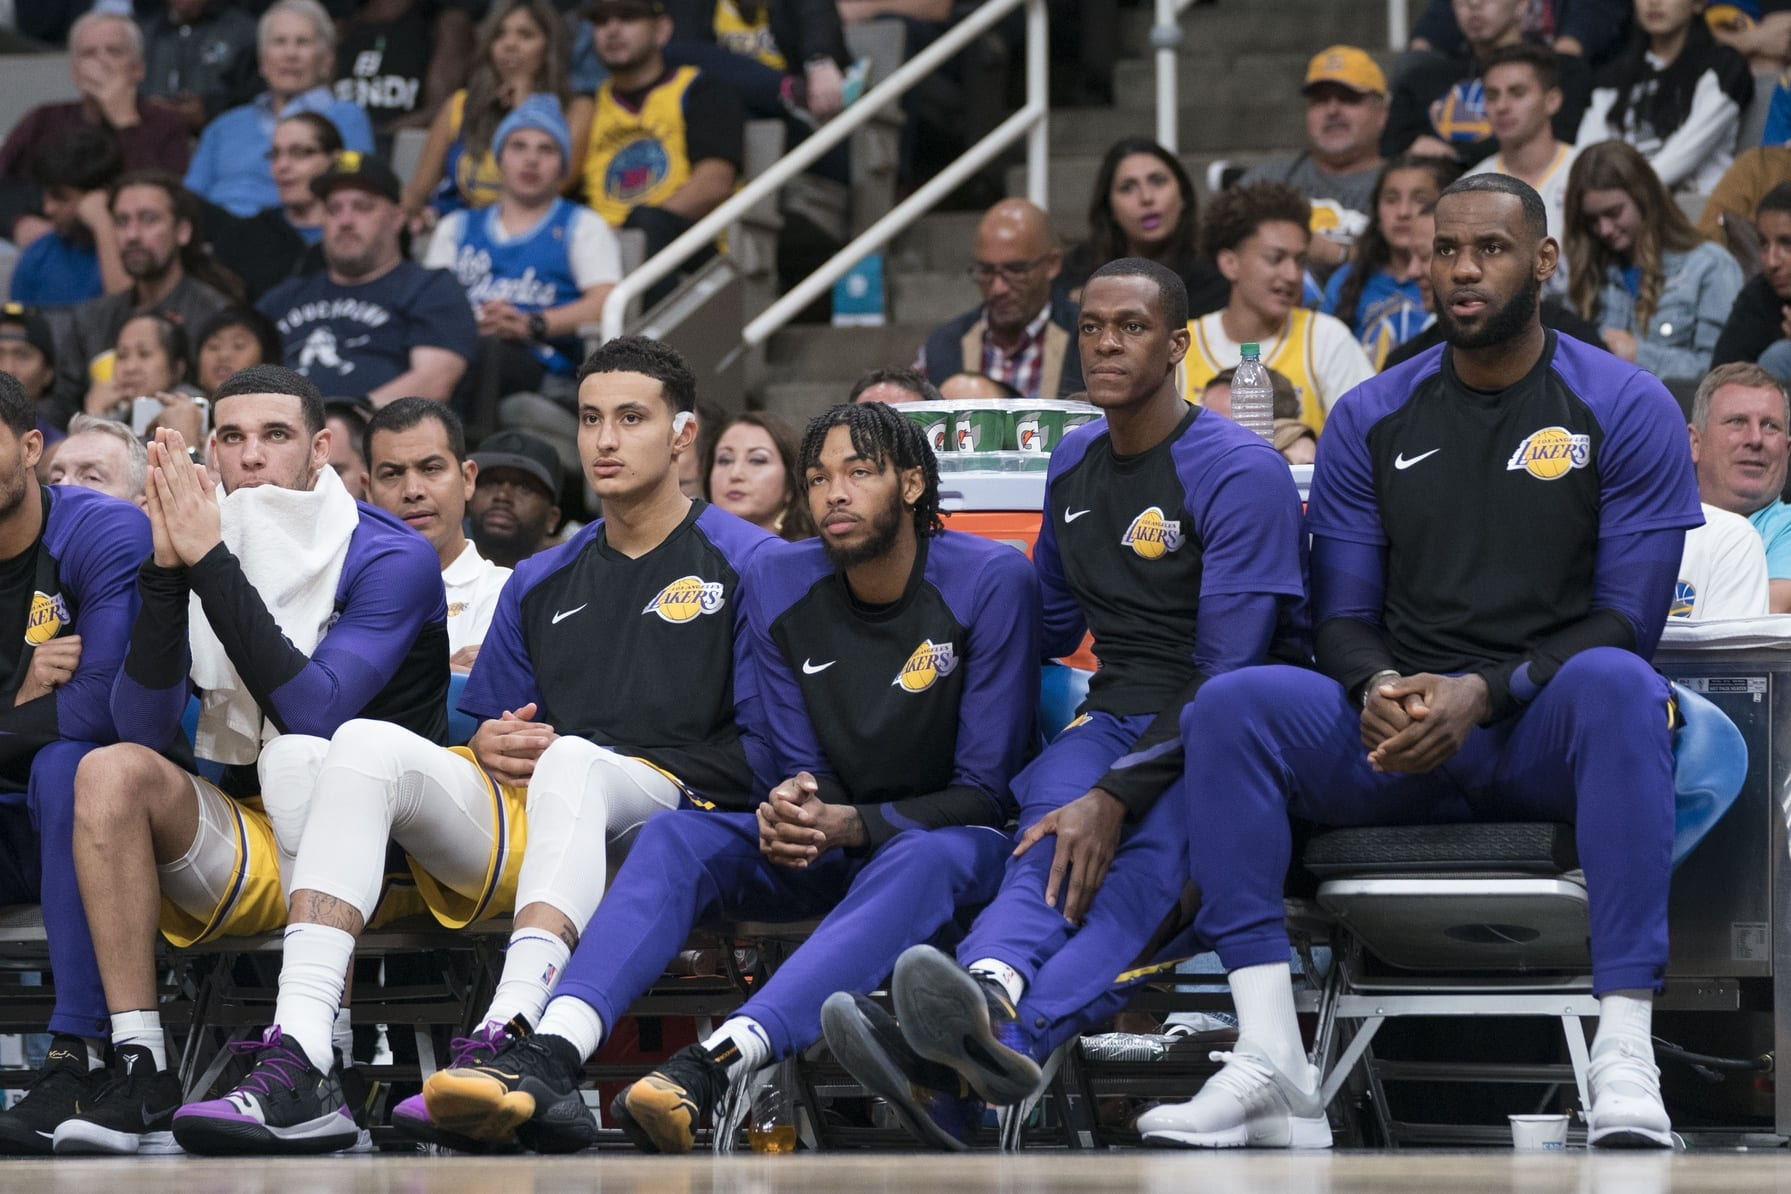 Lonzo Ball, Kyle Kuzma, Brandon Ingram, LeBron James, Rajon Rondo, Lakers bench